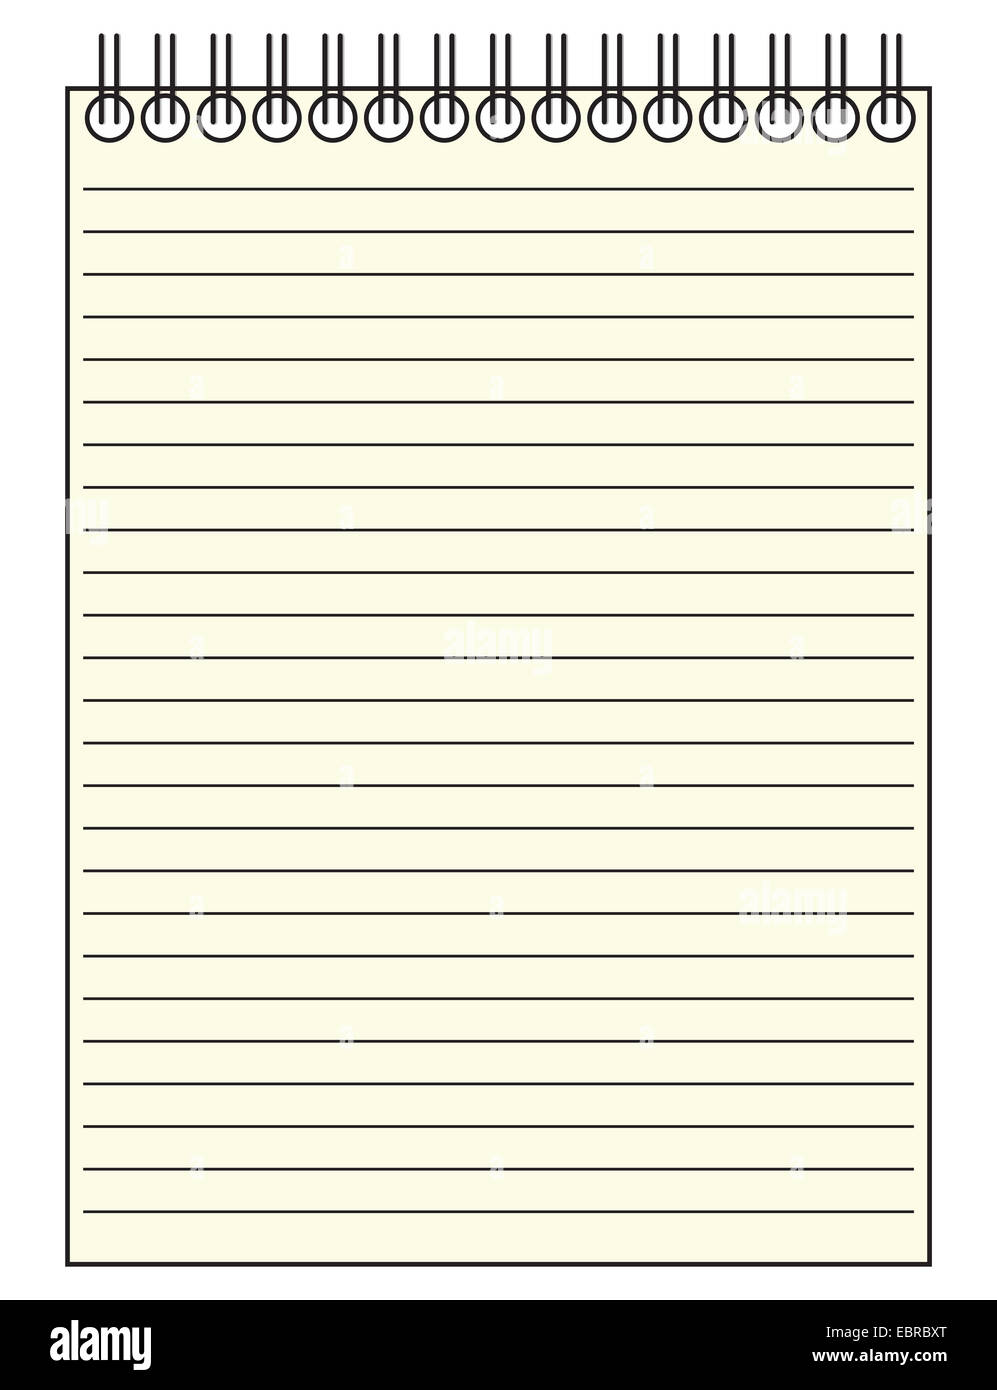 a reporter s lined notepad template or background isolated on a